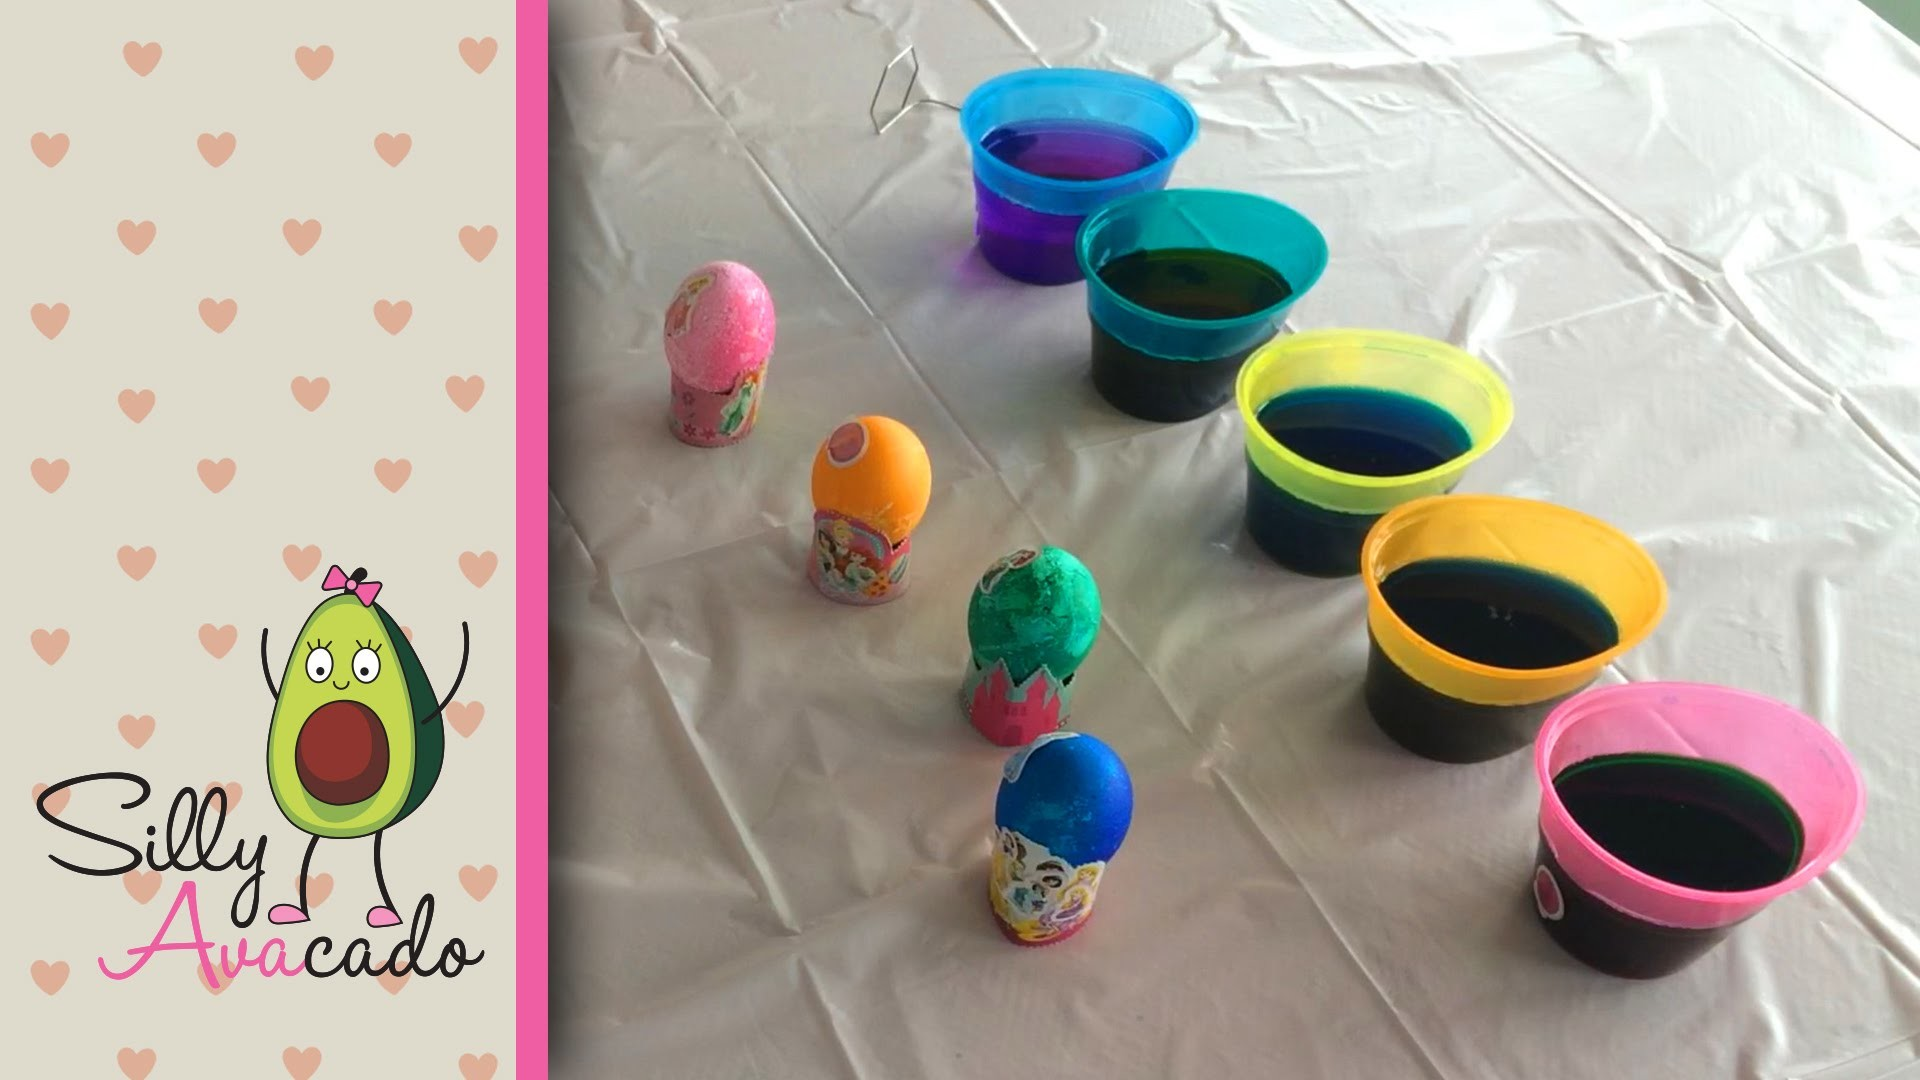 How to Dye Disney Princess Easter Eggs! How to Make Eggs! DIY Coloring! Disney Princess Stickers!